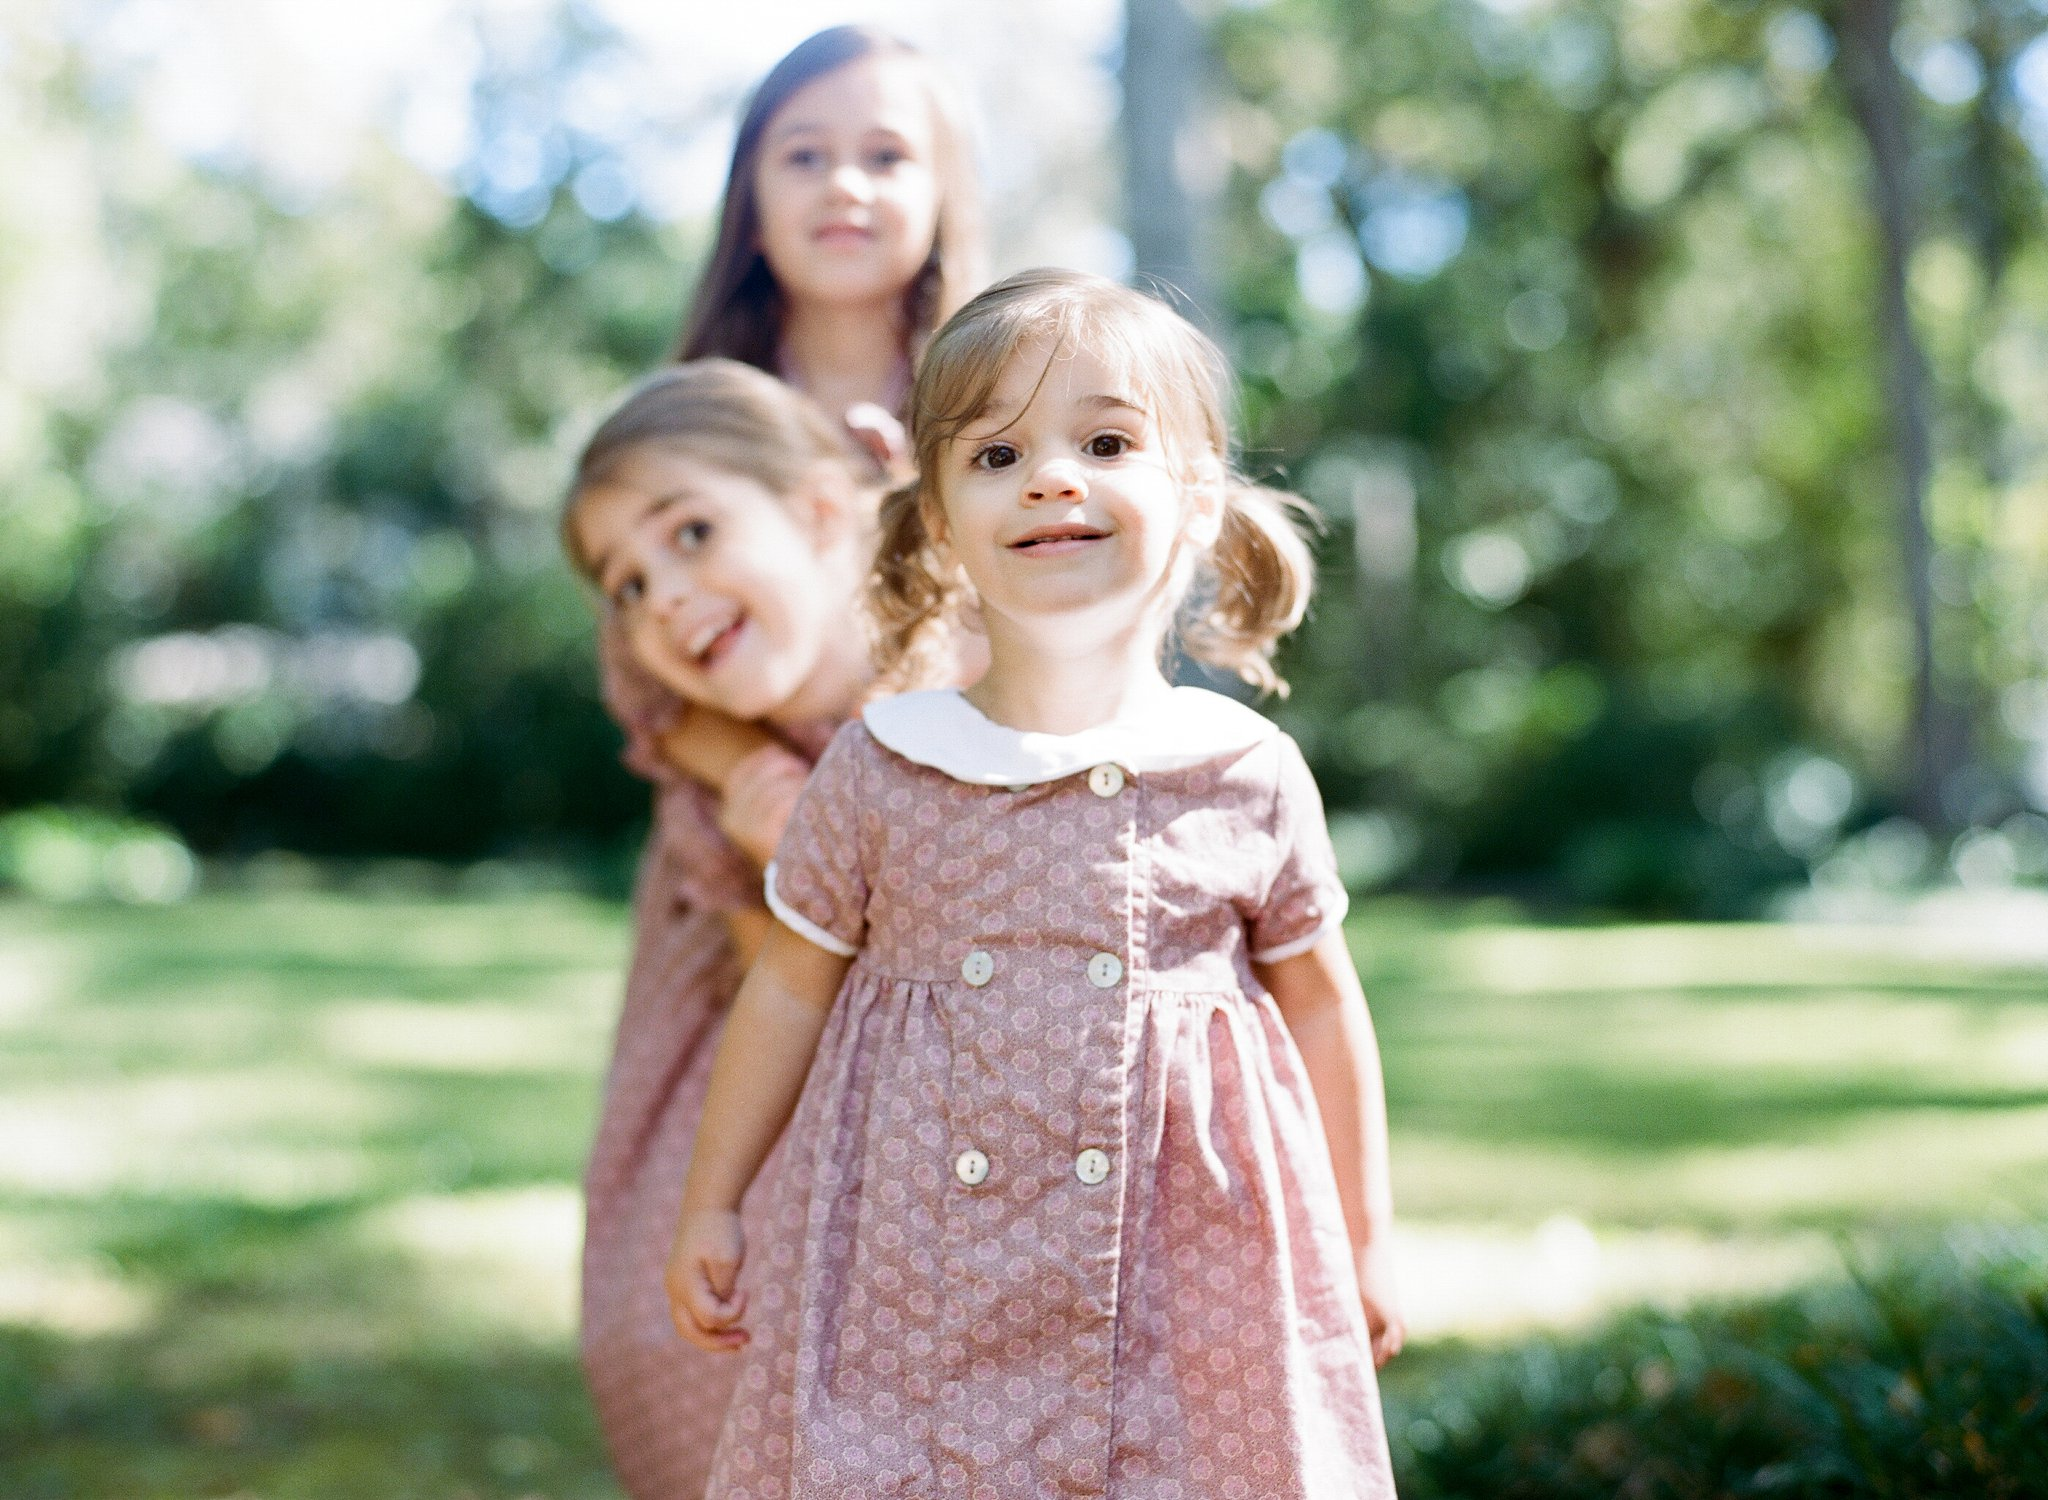 tallahassee family photographer shannon griffin photography_0038.jpg